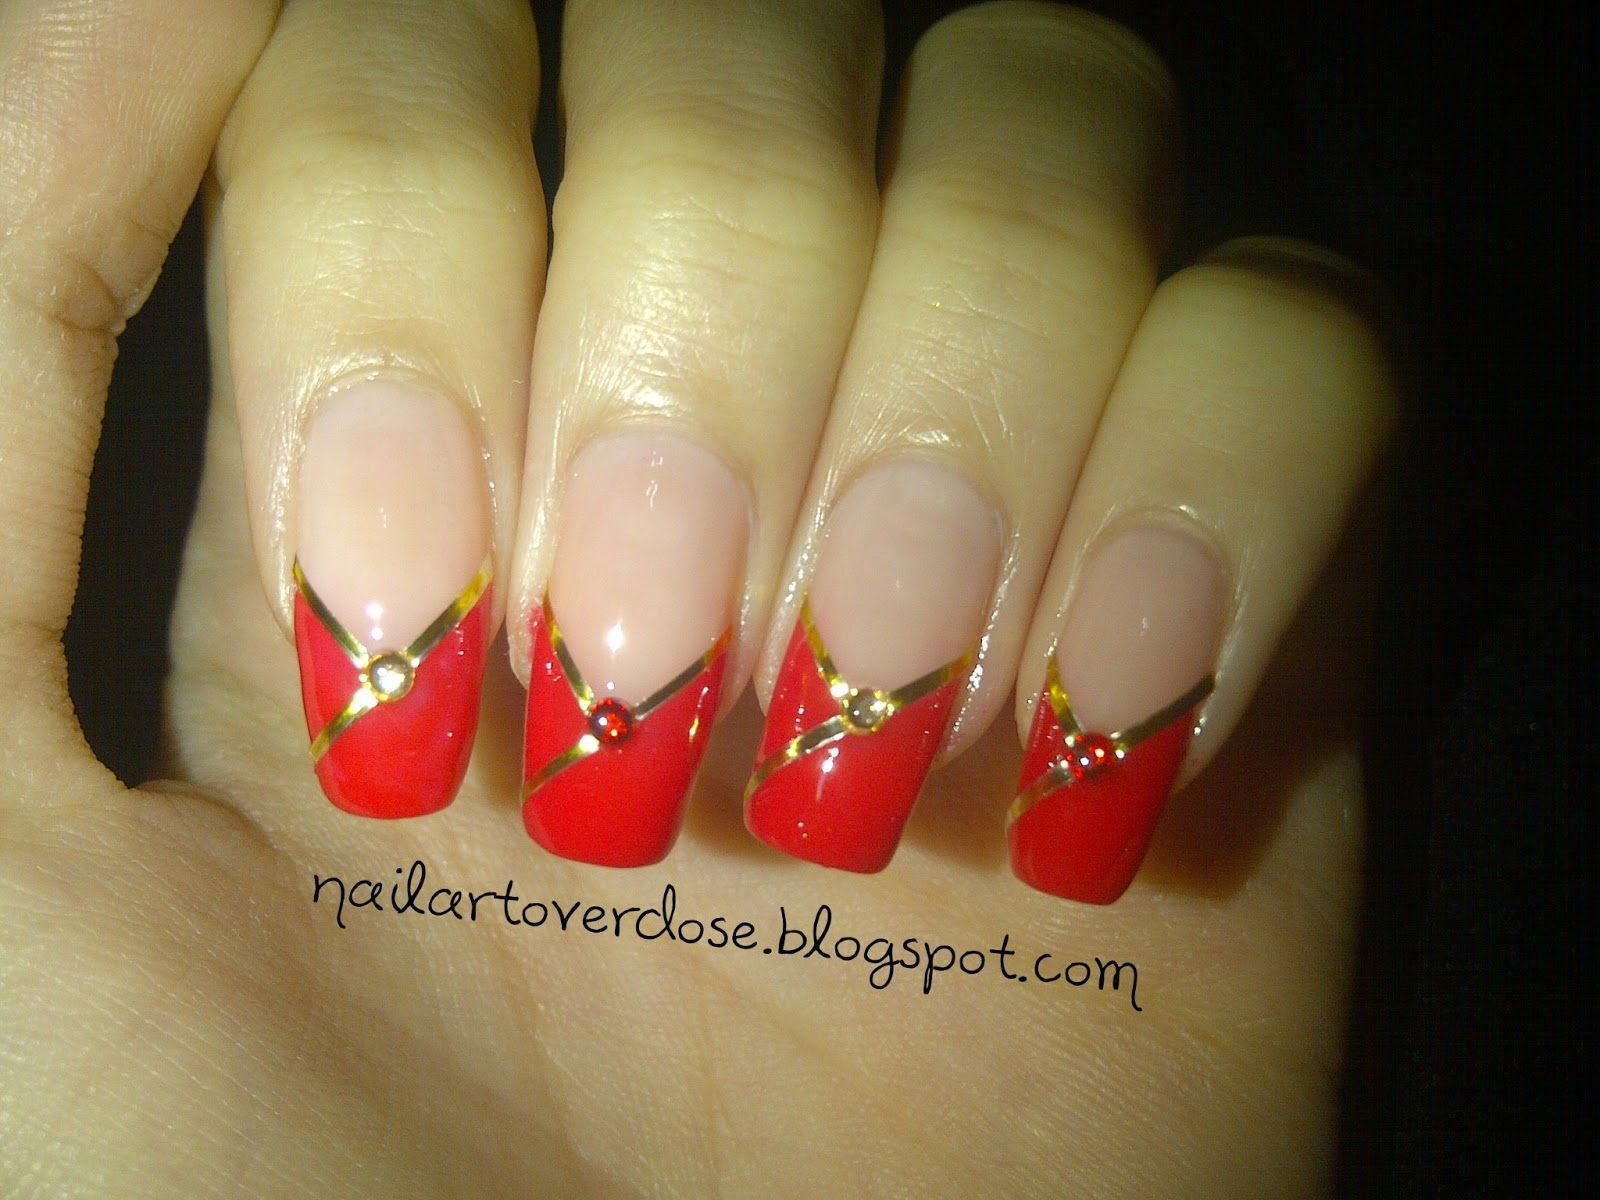 Nail Art Overdose: Chinese/Lunar New Year Nail Art Design ...